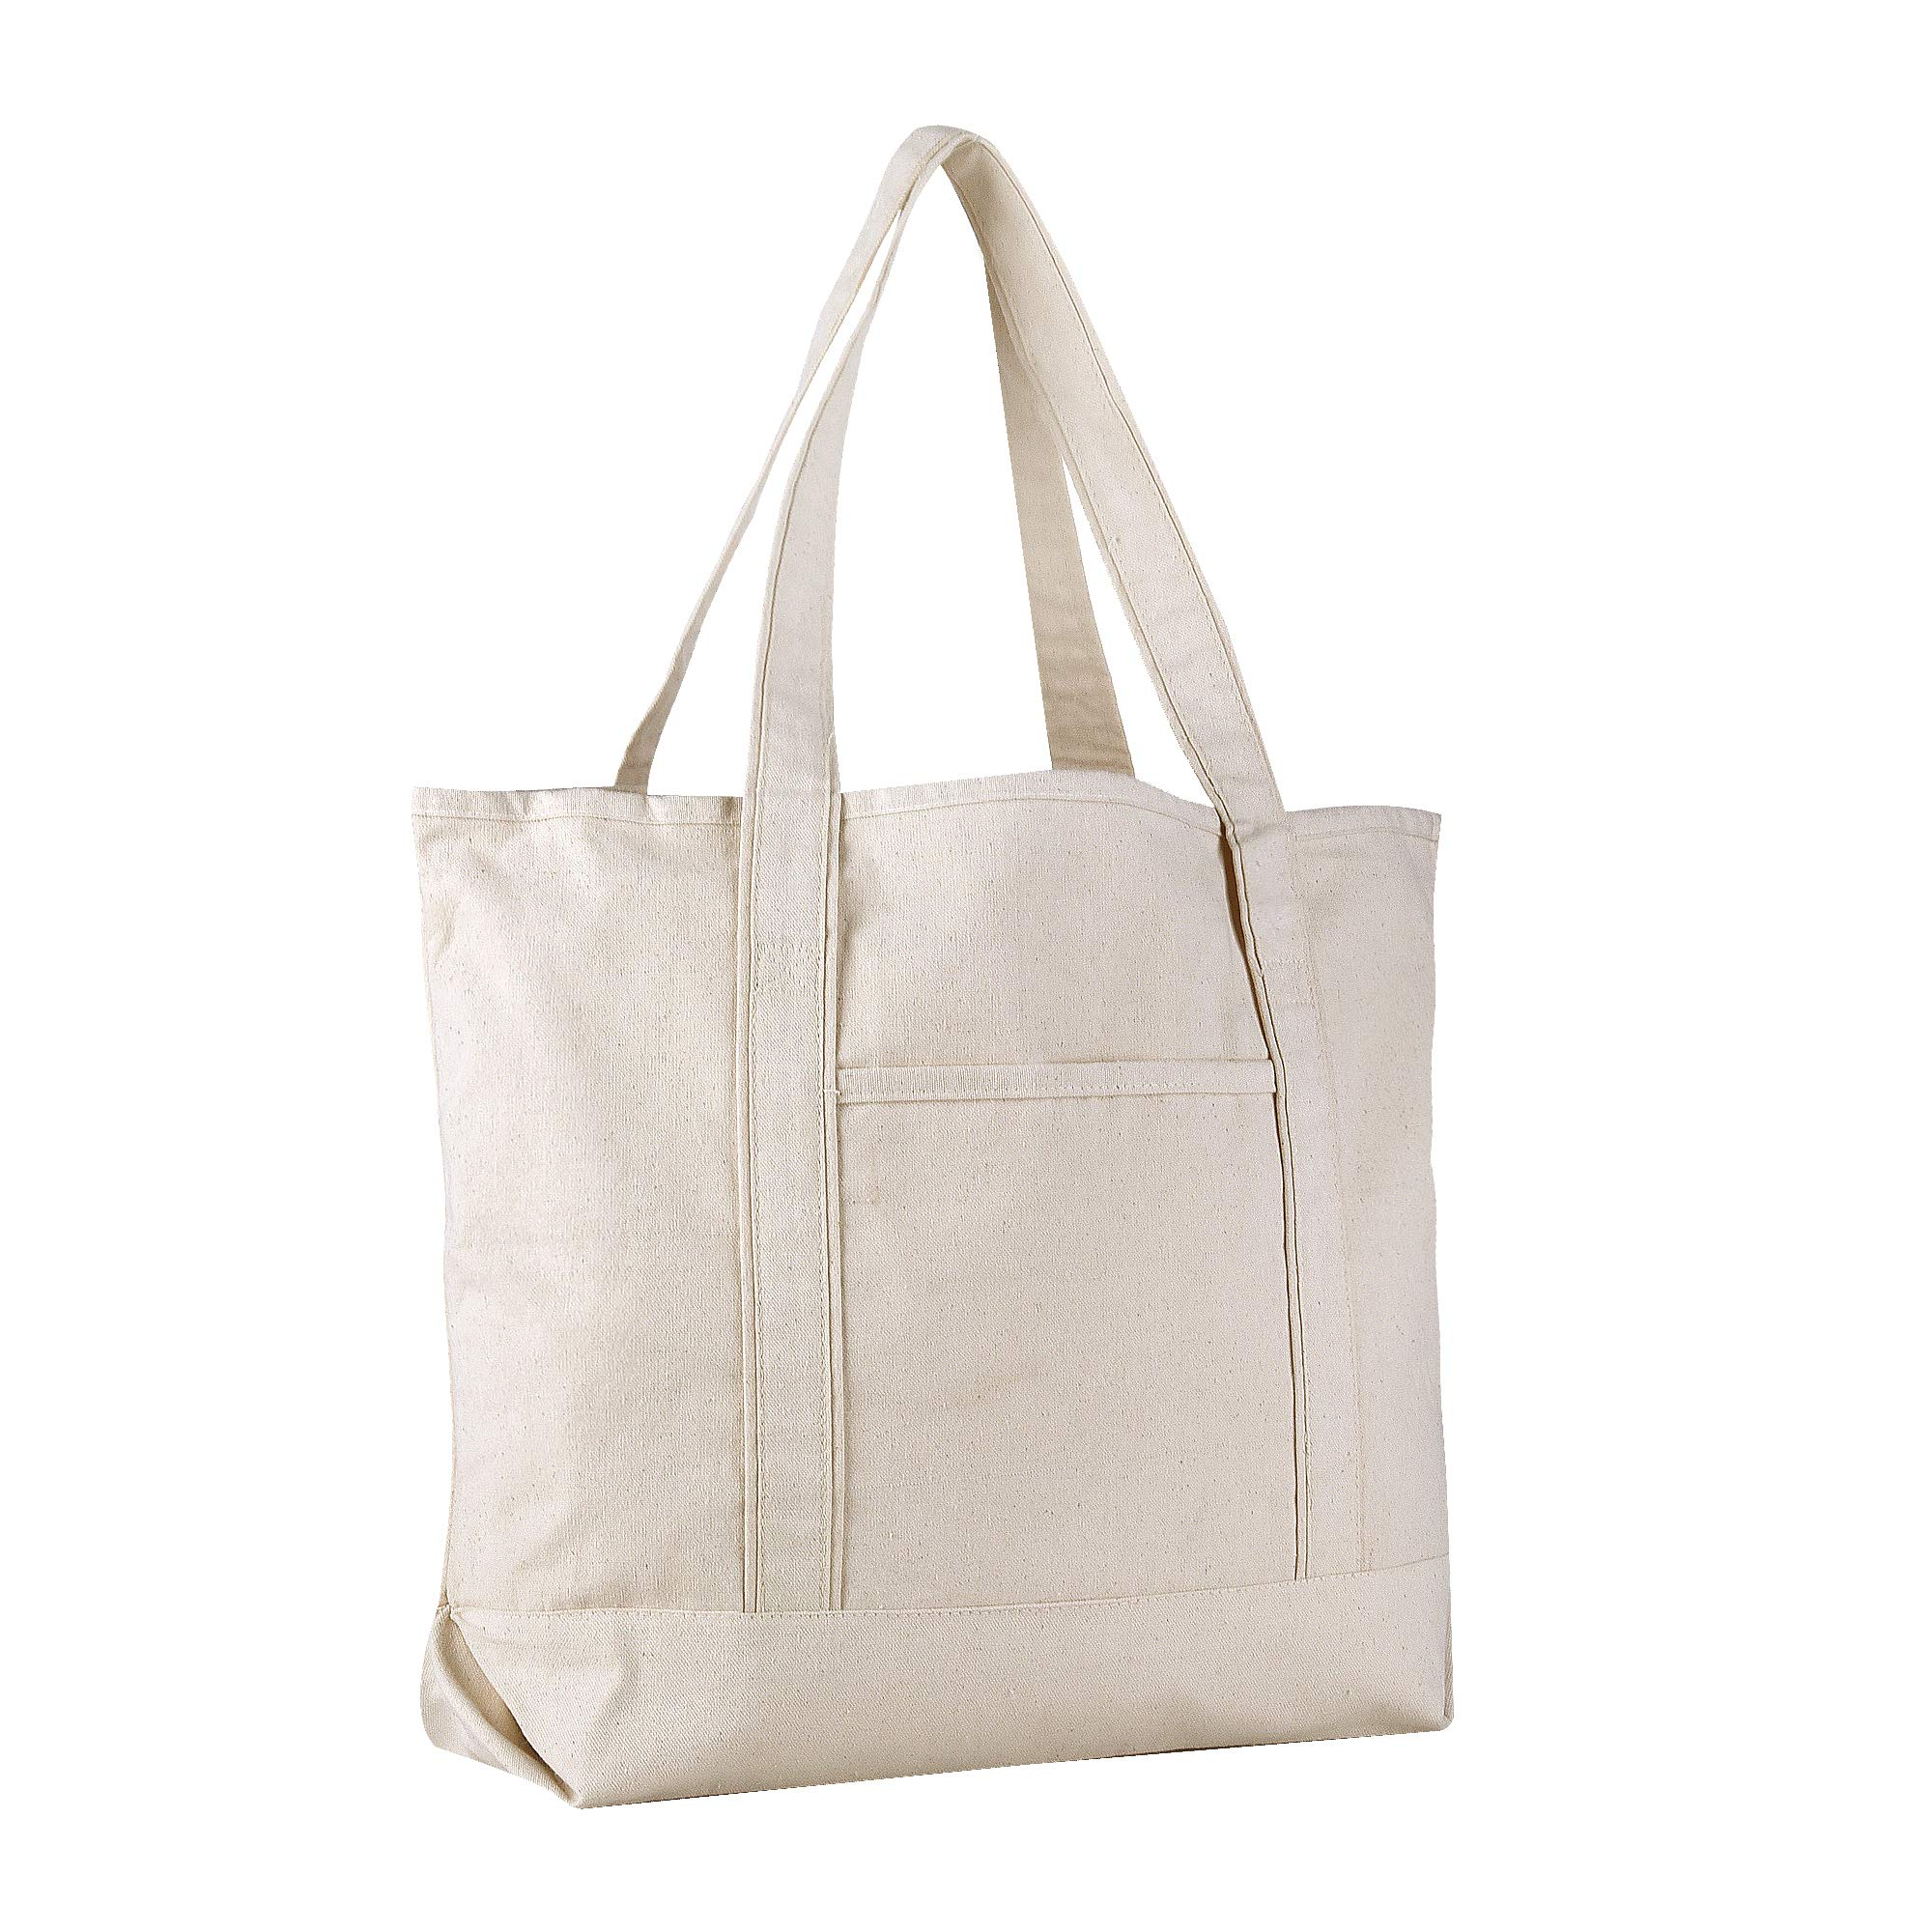 BagzDepot Boat Canvas Tote Bag - 22'' Extra Large Heavy Duty and Reusable Carry Beach Bags with Handles (1 Pack, Natural)